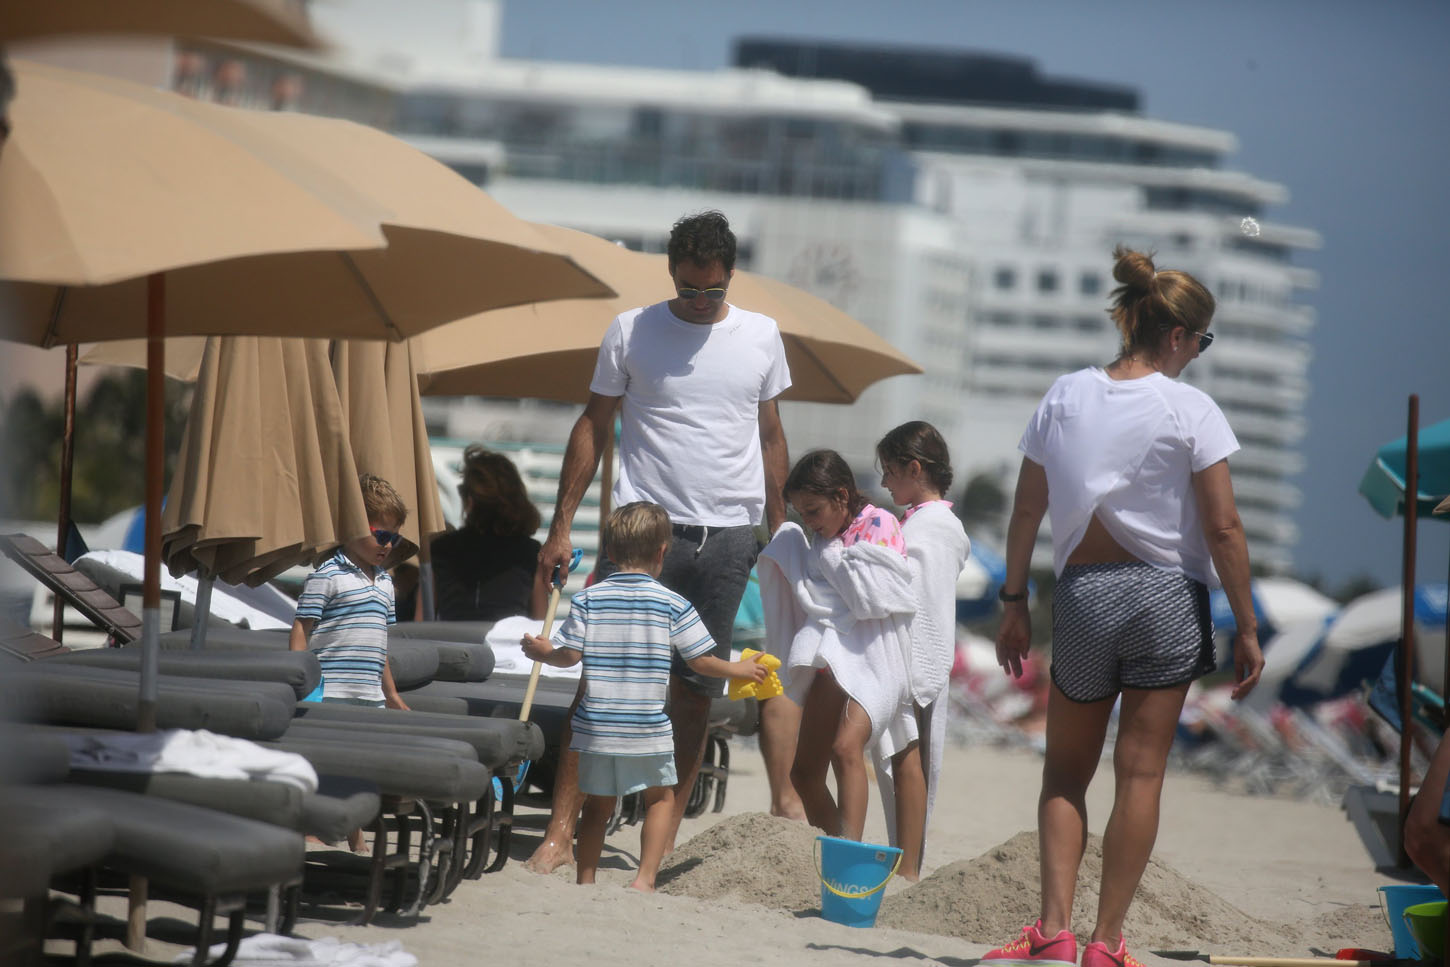 EXCLUSIVE: Roger Federer takes his wife, Mika, and their four children Charlene, Leo, Lenny and Myla,  to the beach in Miami. 21 Mar 2018, Image: 366562031, License: Rights-managed, Restrictions: World Rights, Model Release: no, Credit line: Profimedia, Mega Agency